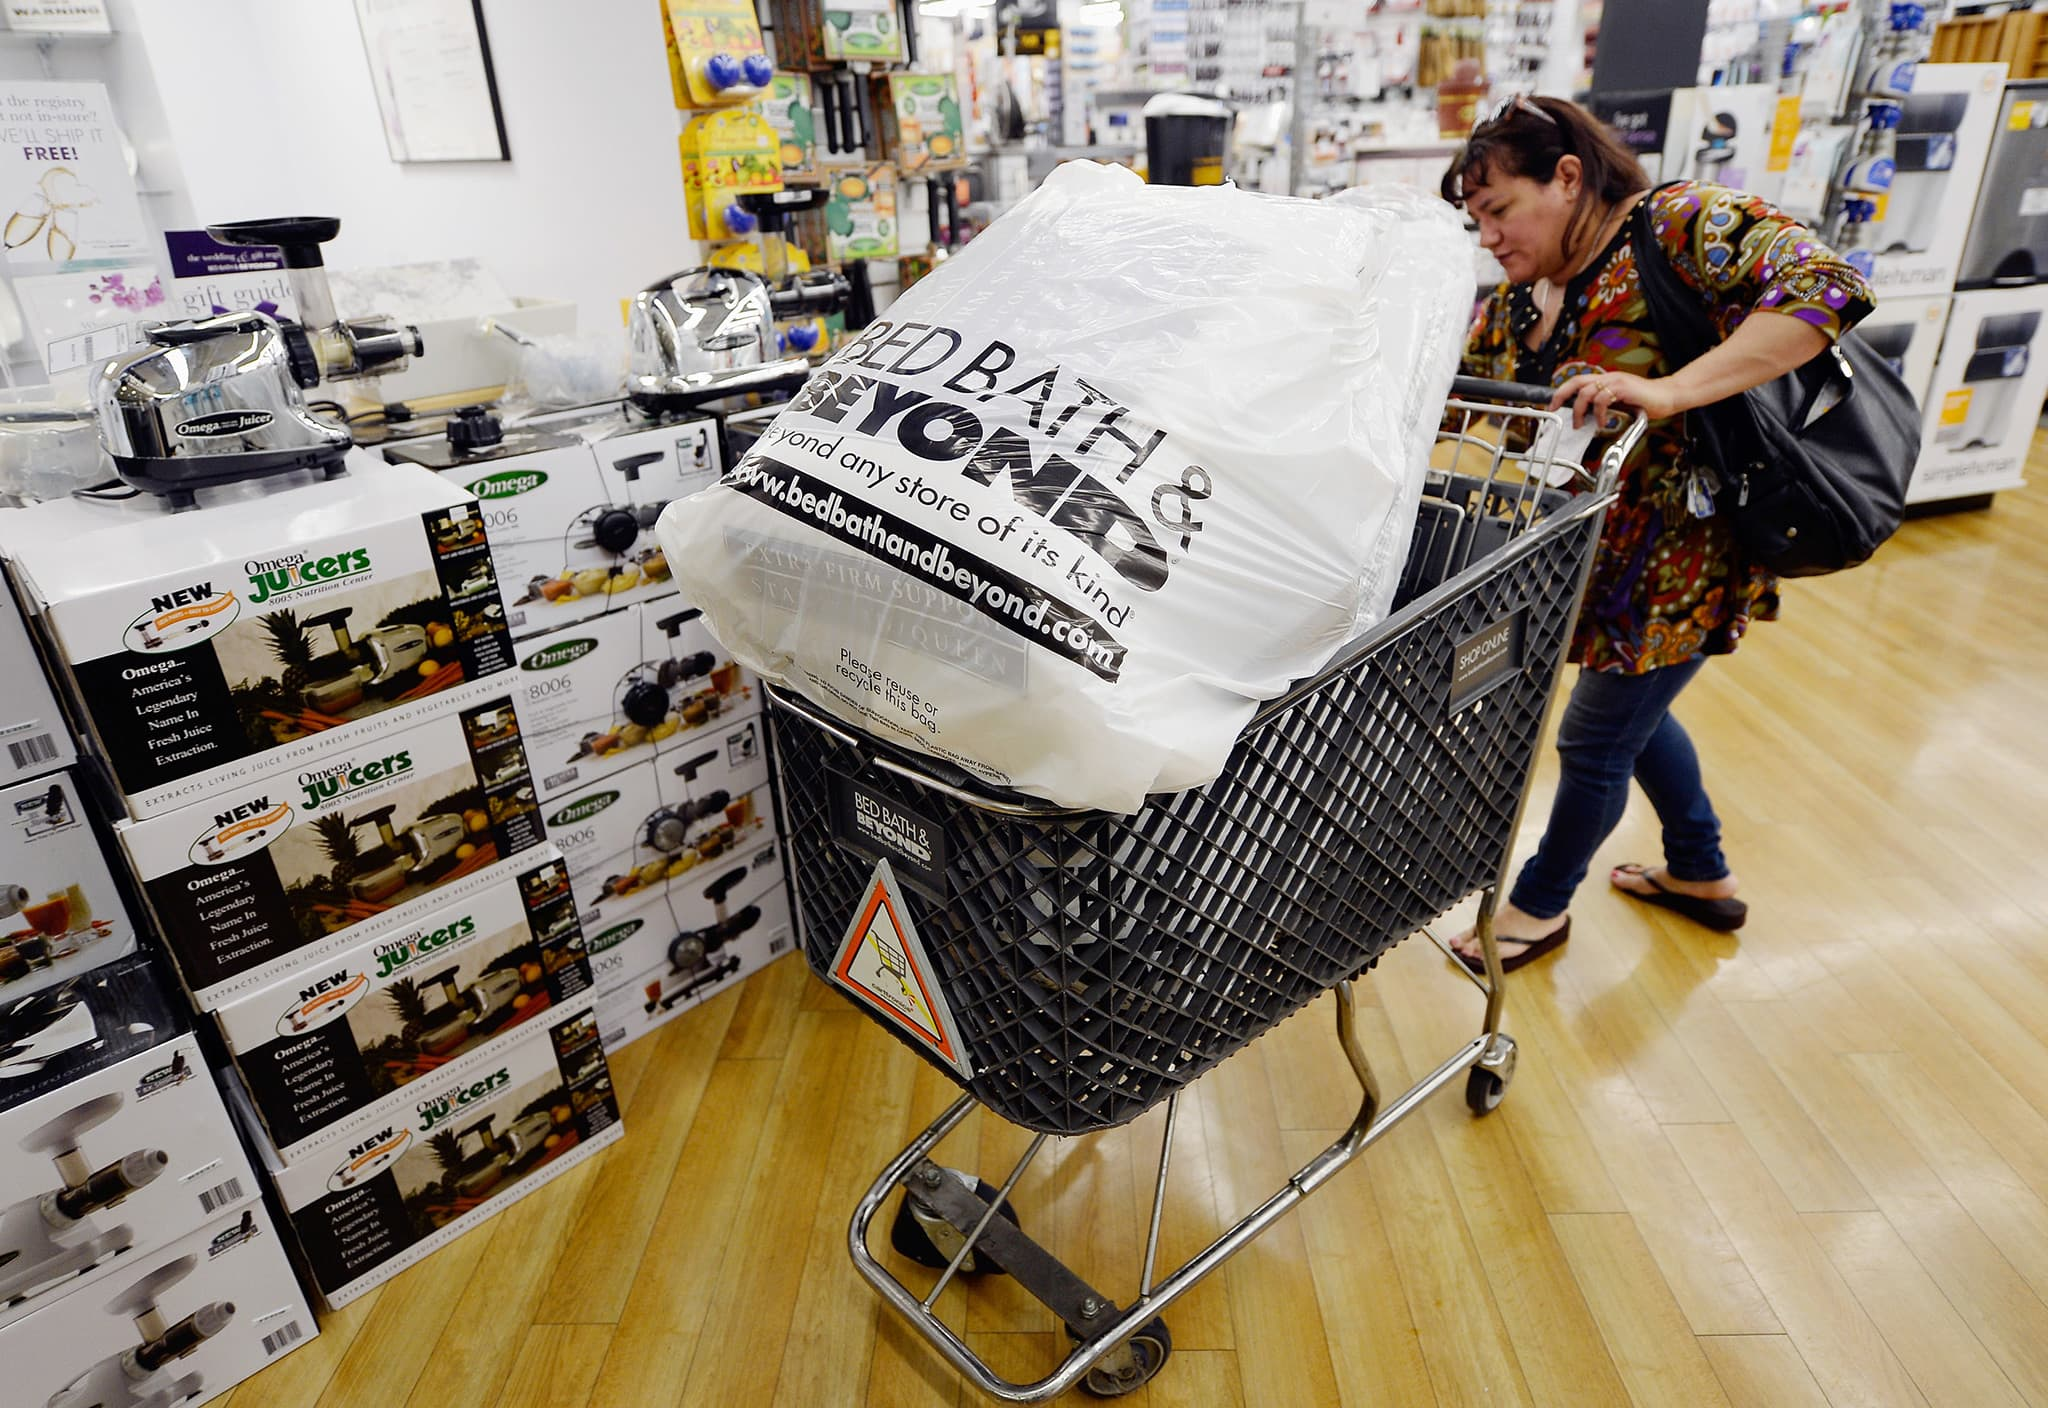 Bed Bath & Beyond plans to scale back coupons in bid to boost profits - CNBC